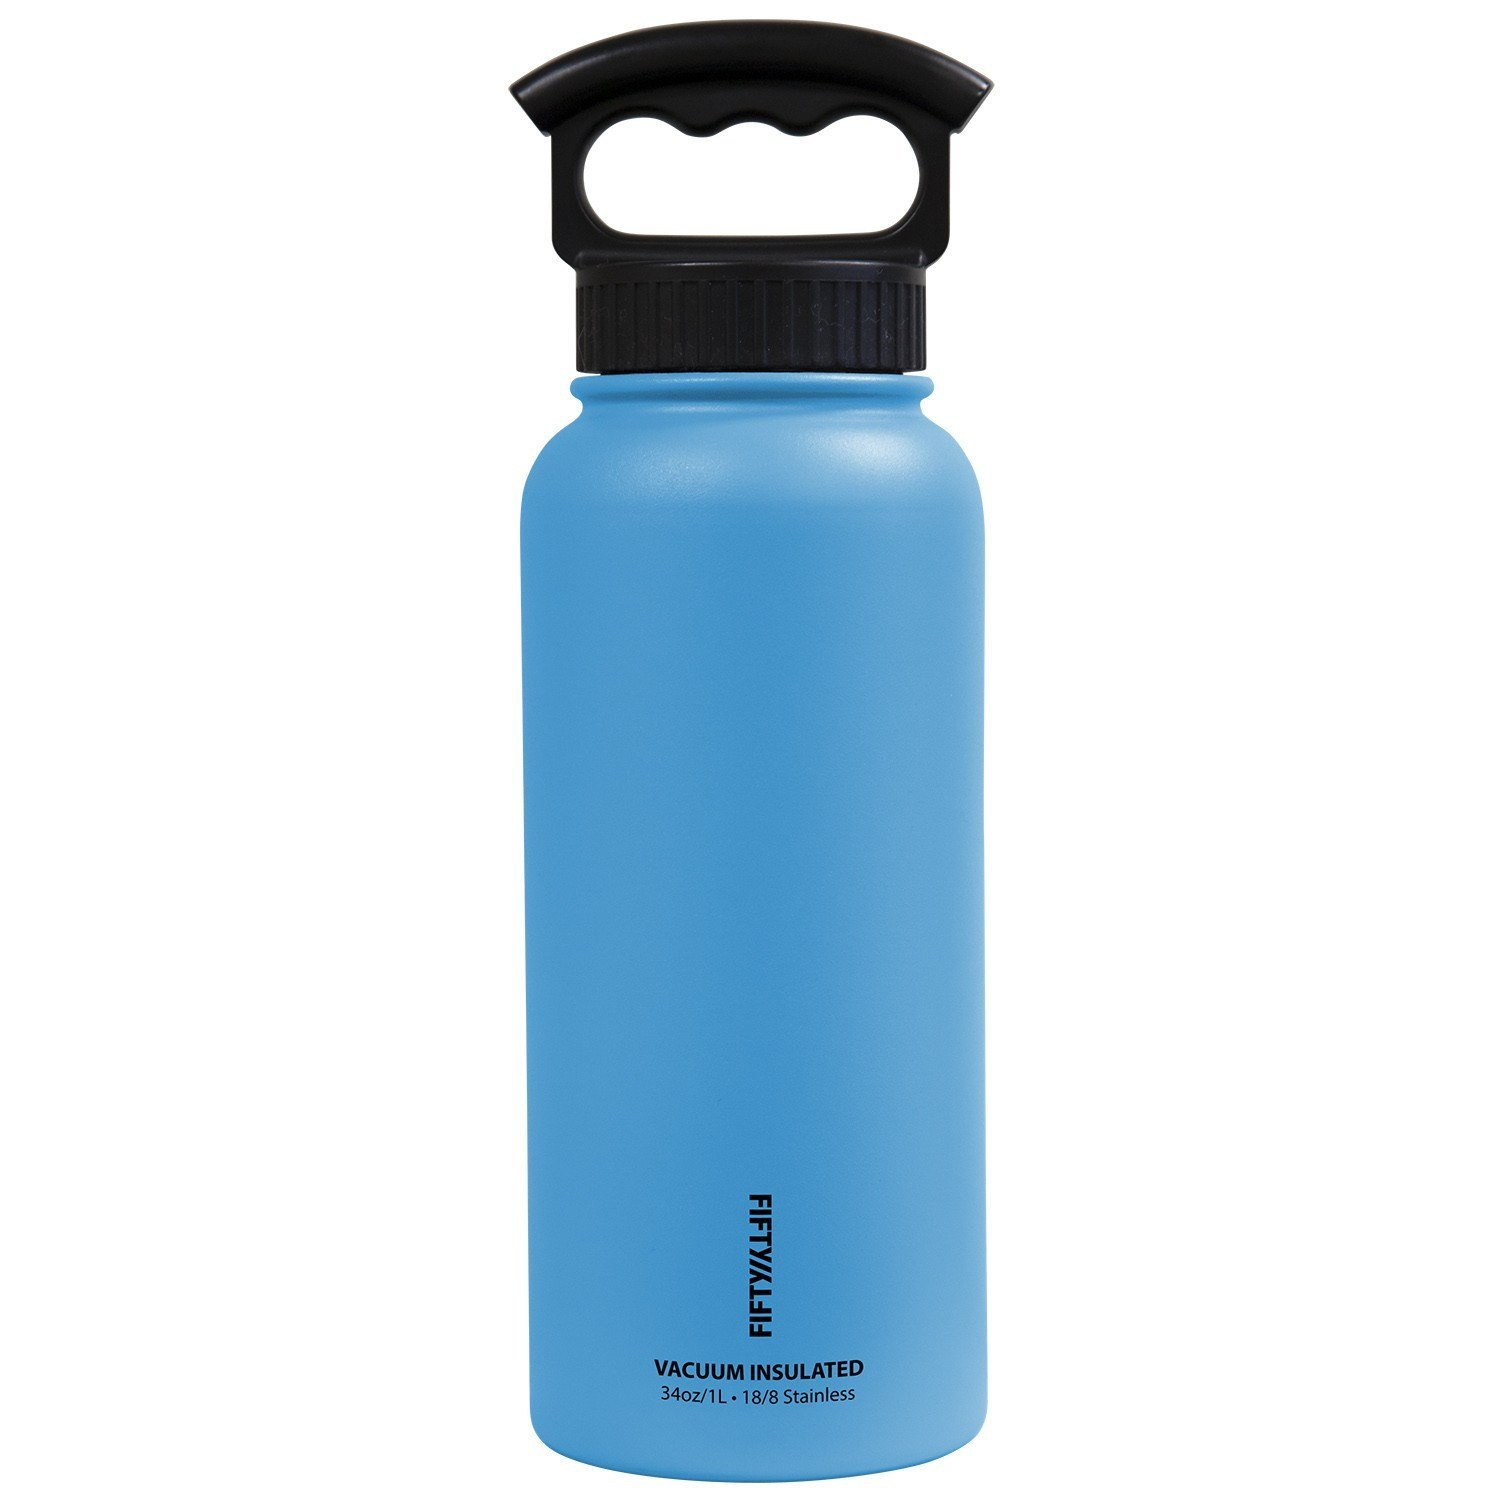 FIFTY/FIFTY Vacuum-Insulated Stainless Steel Bottle